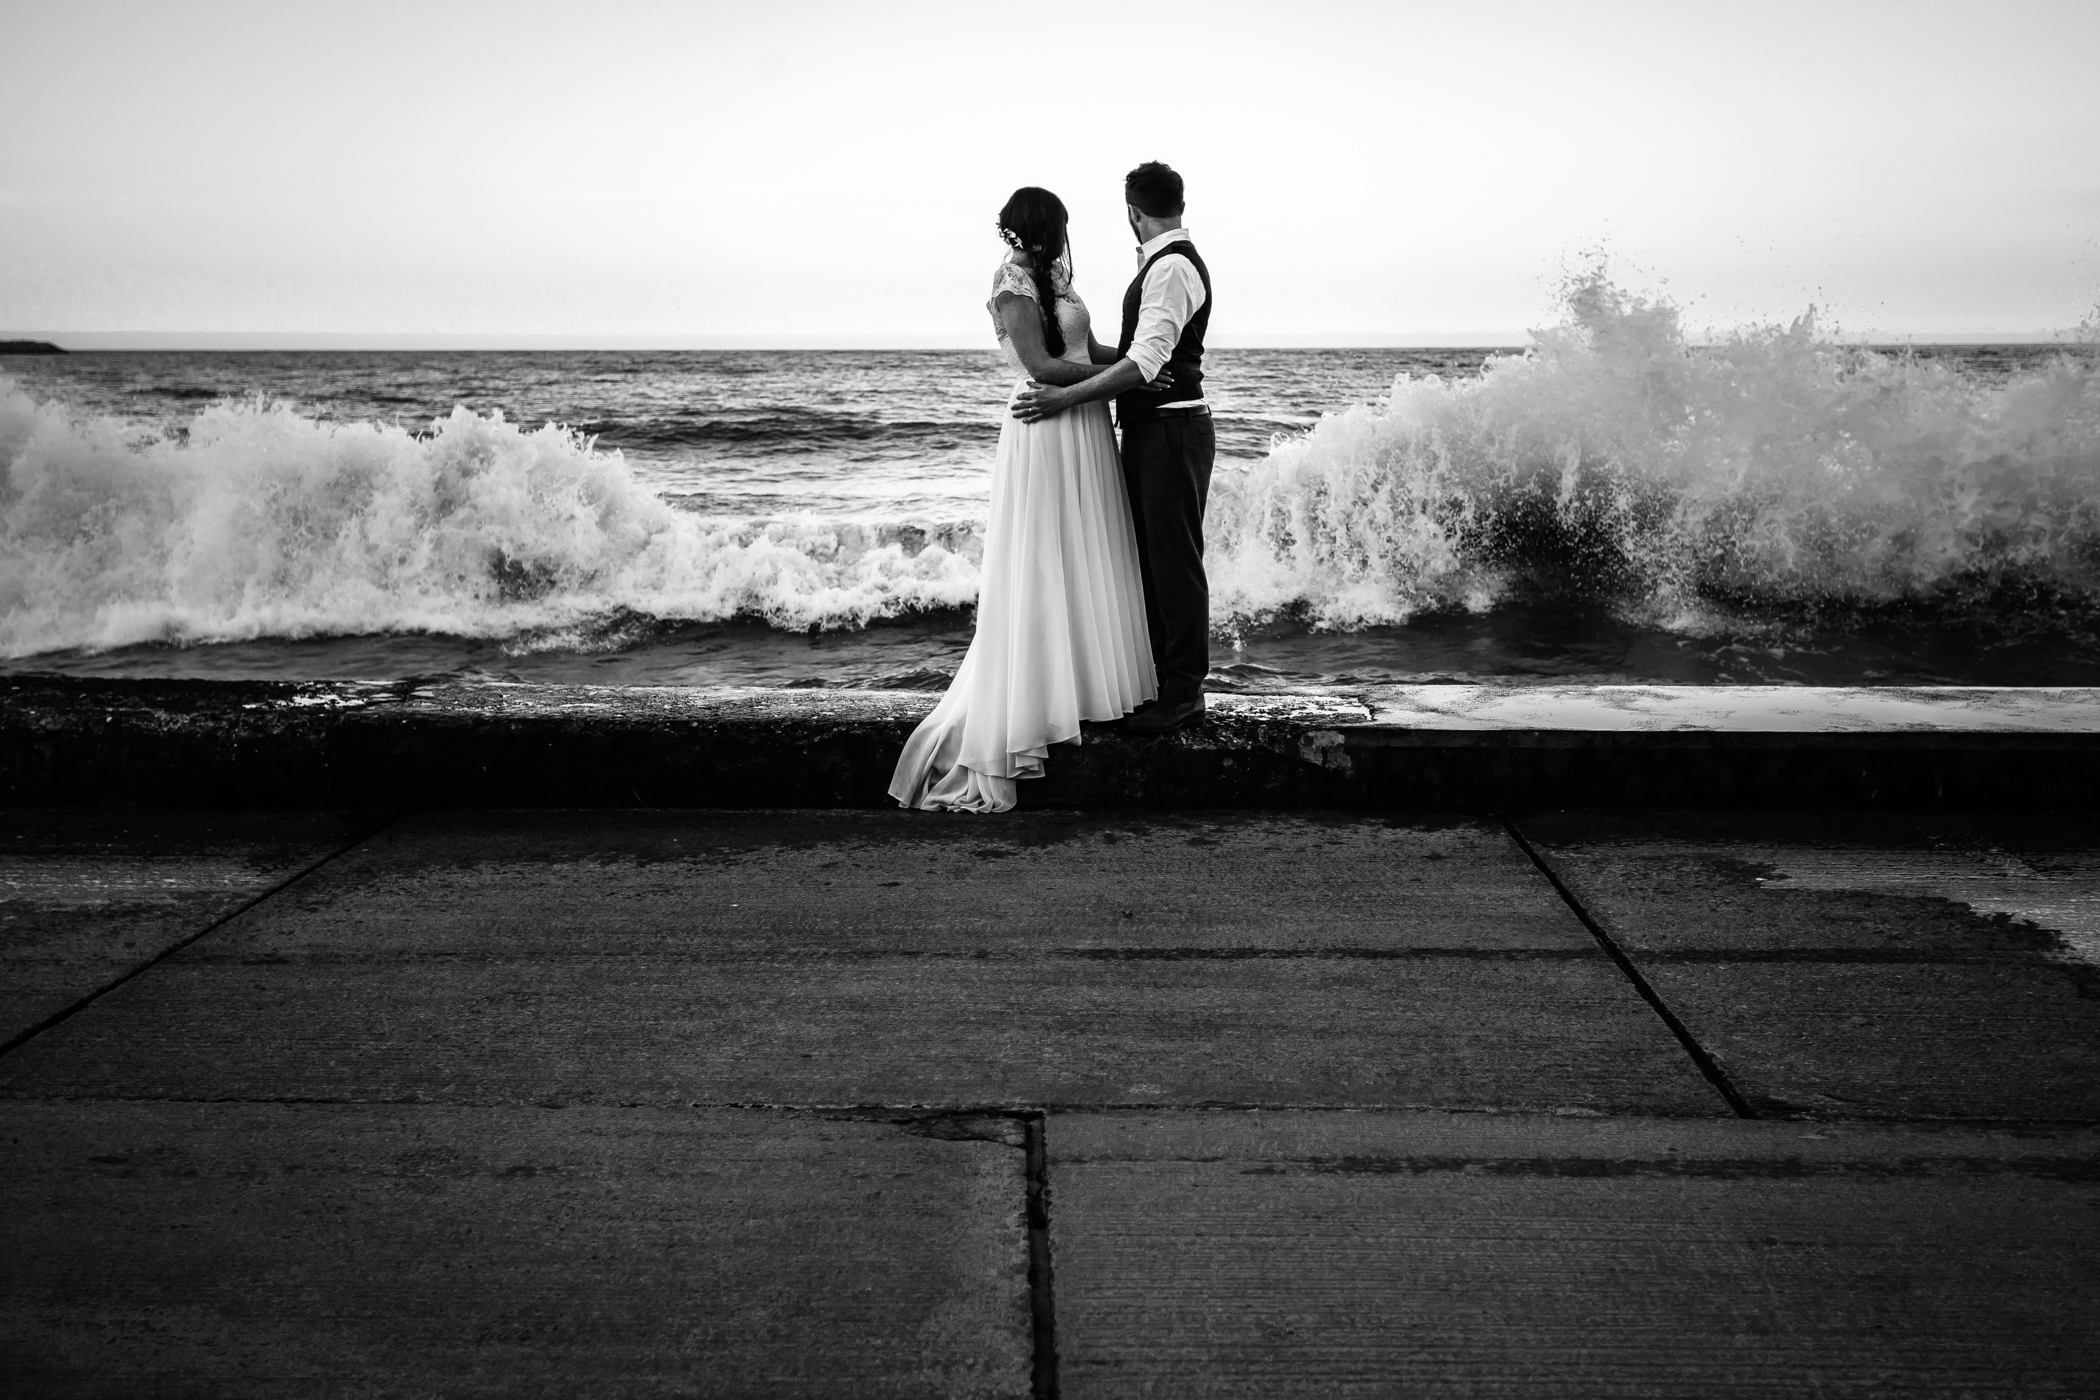 sansom photography beach wedding photography charlotte & mike-67